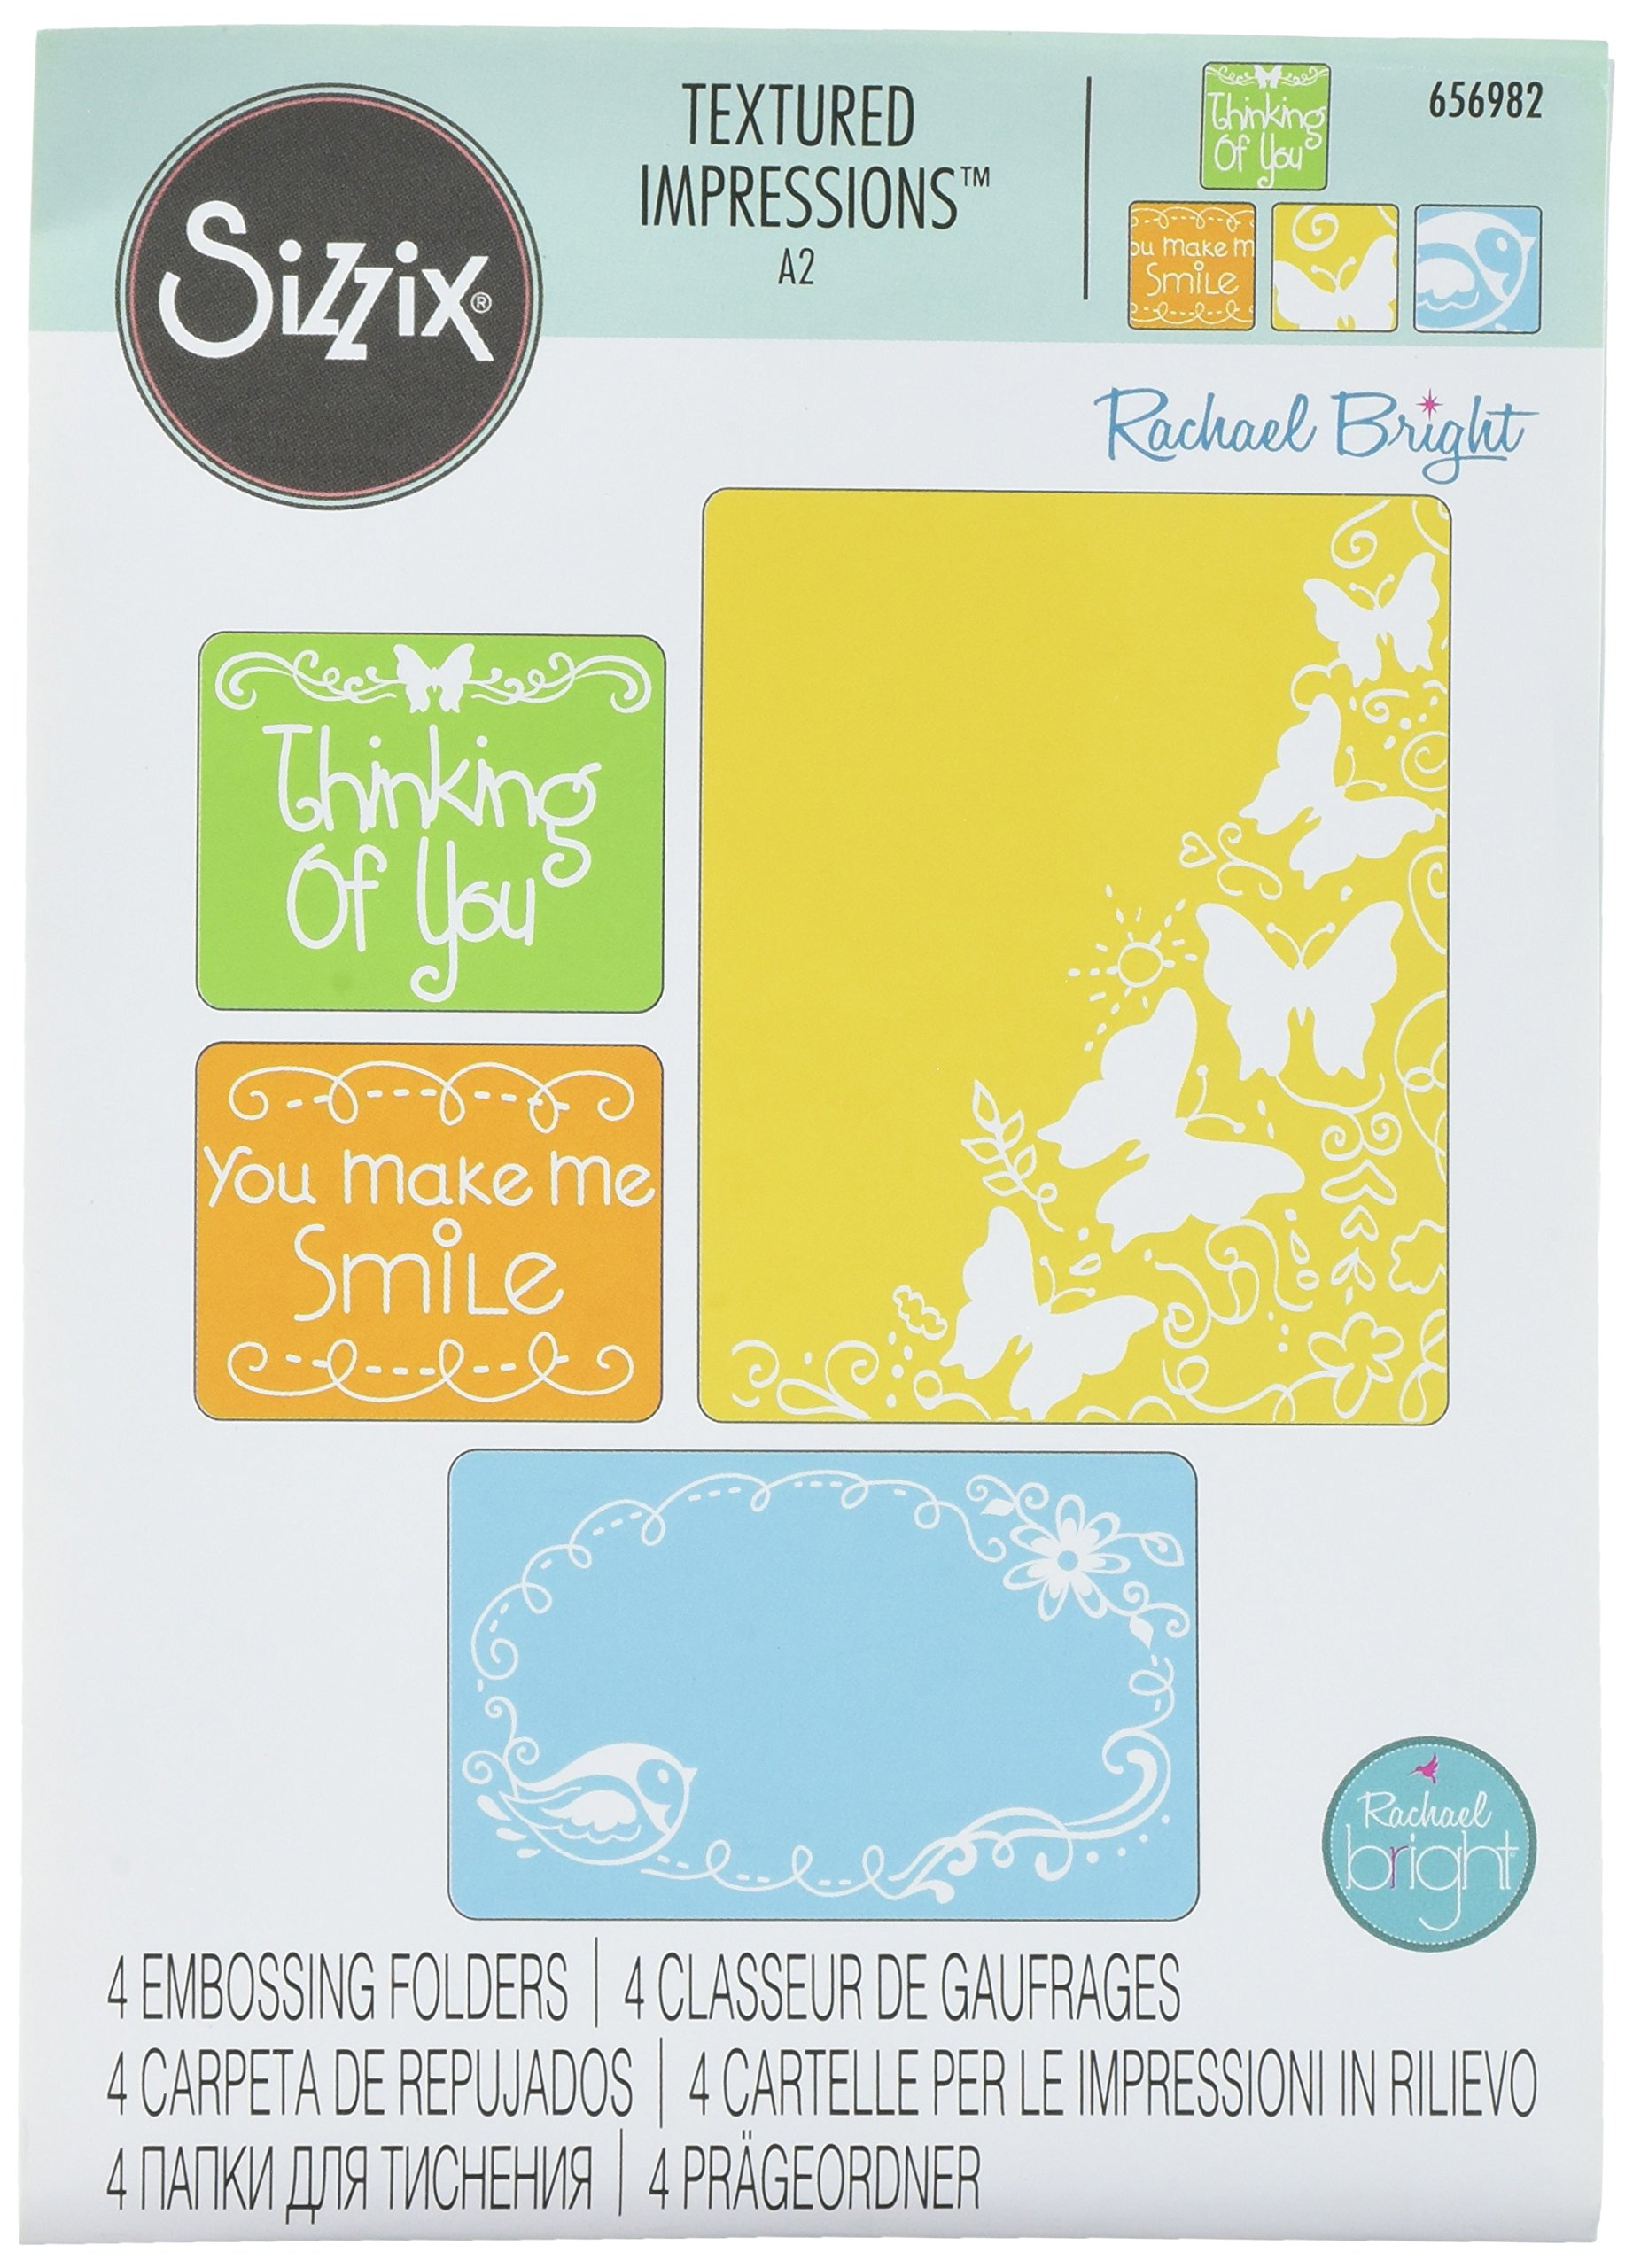 Sizzix Textured Impressions Embossing Folders 4/PK - Butterfly Migration Set by Rachael Bright